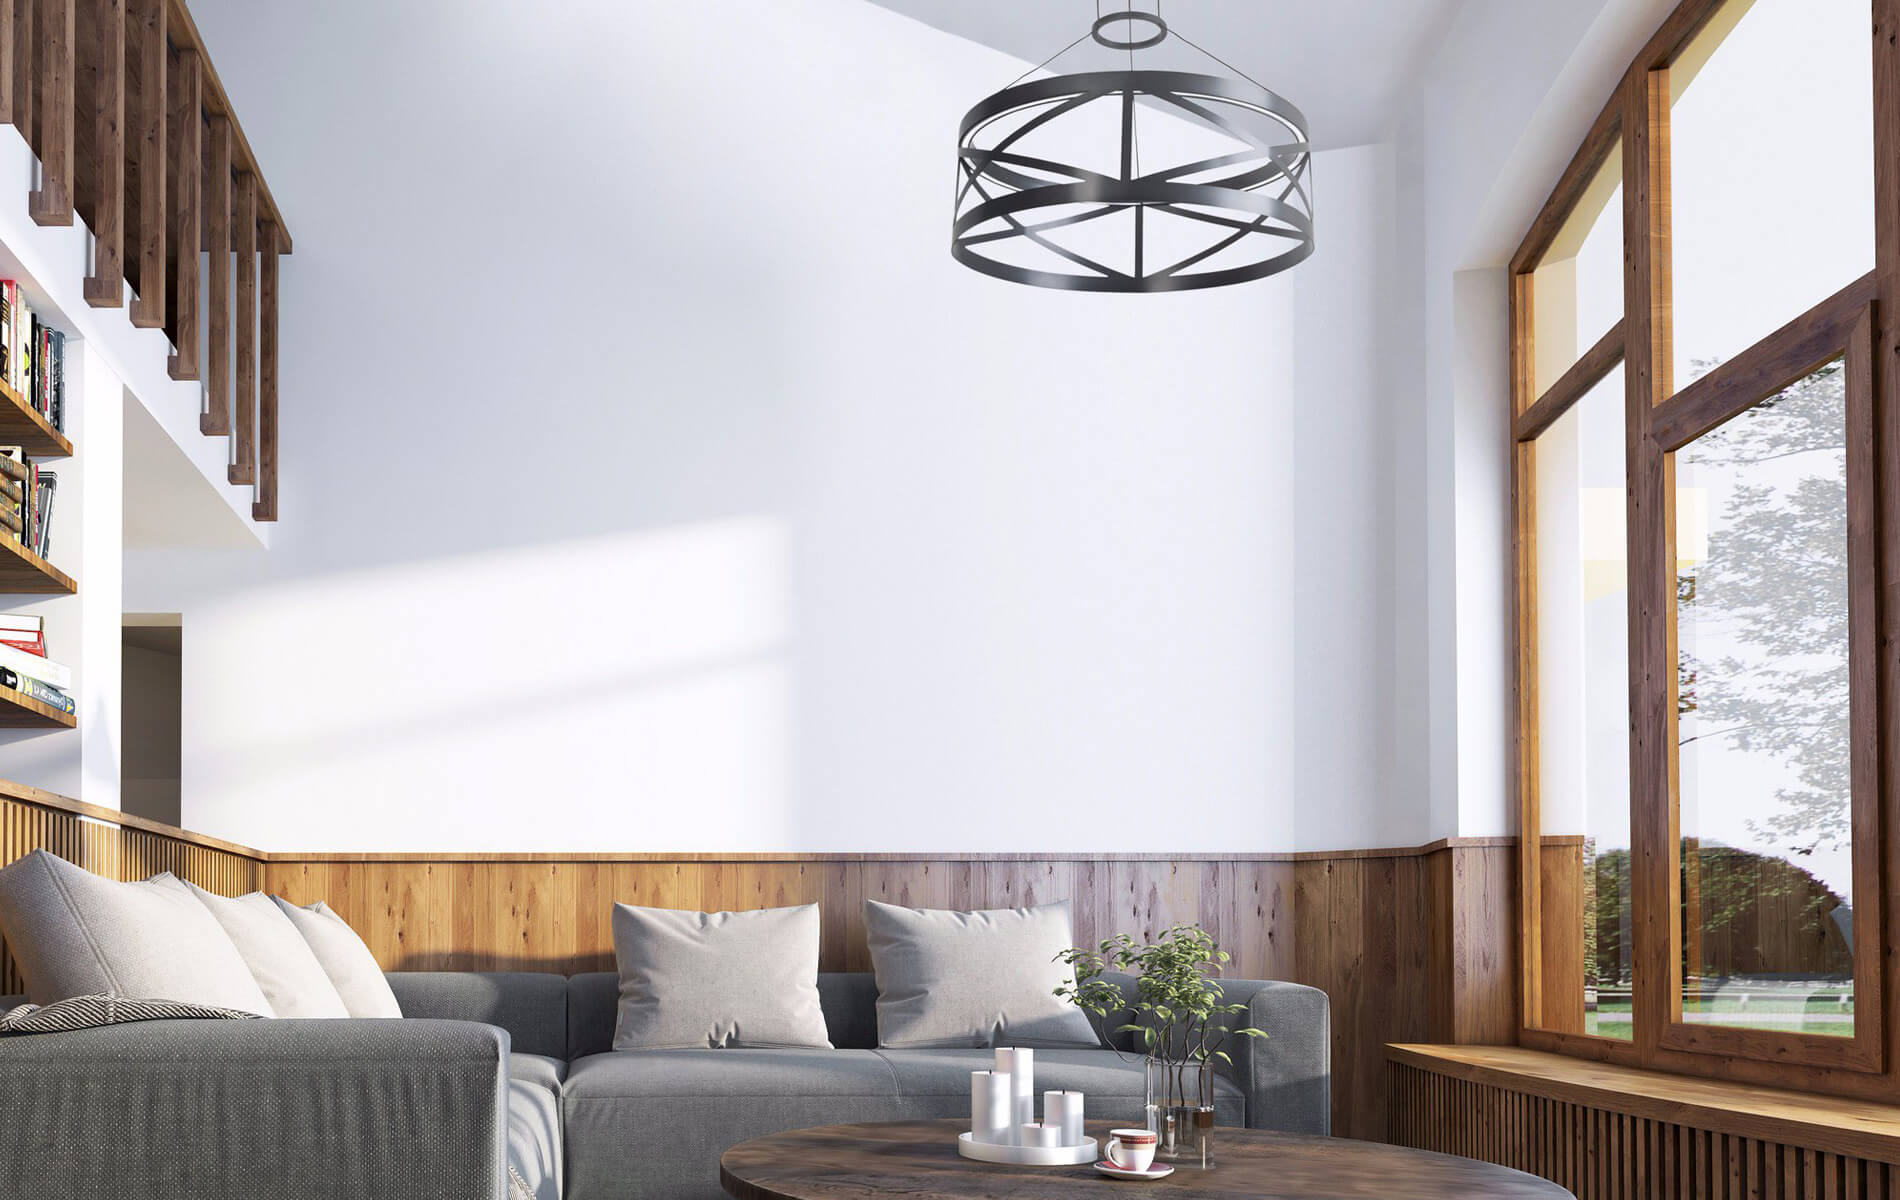 More information of Leds C4 TRAIN pendant lamp